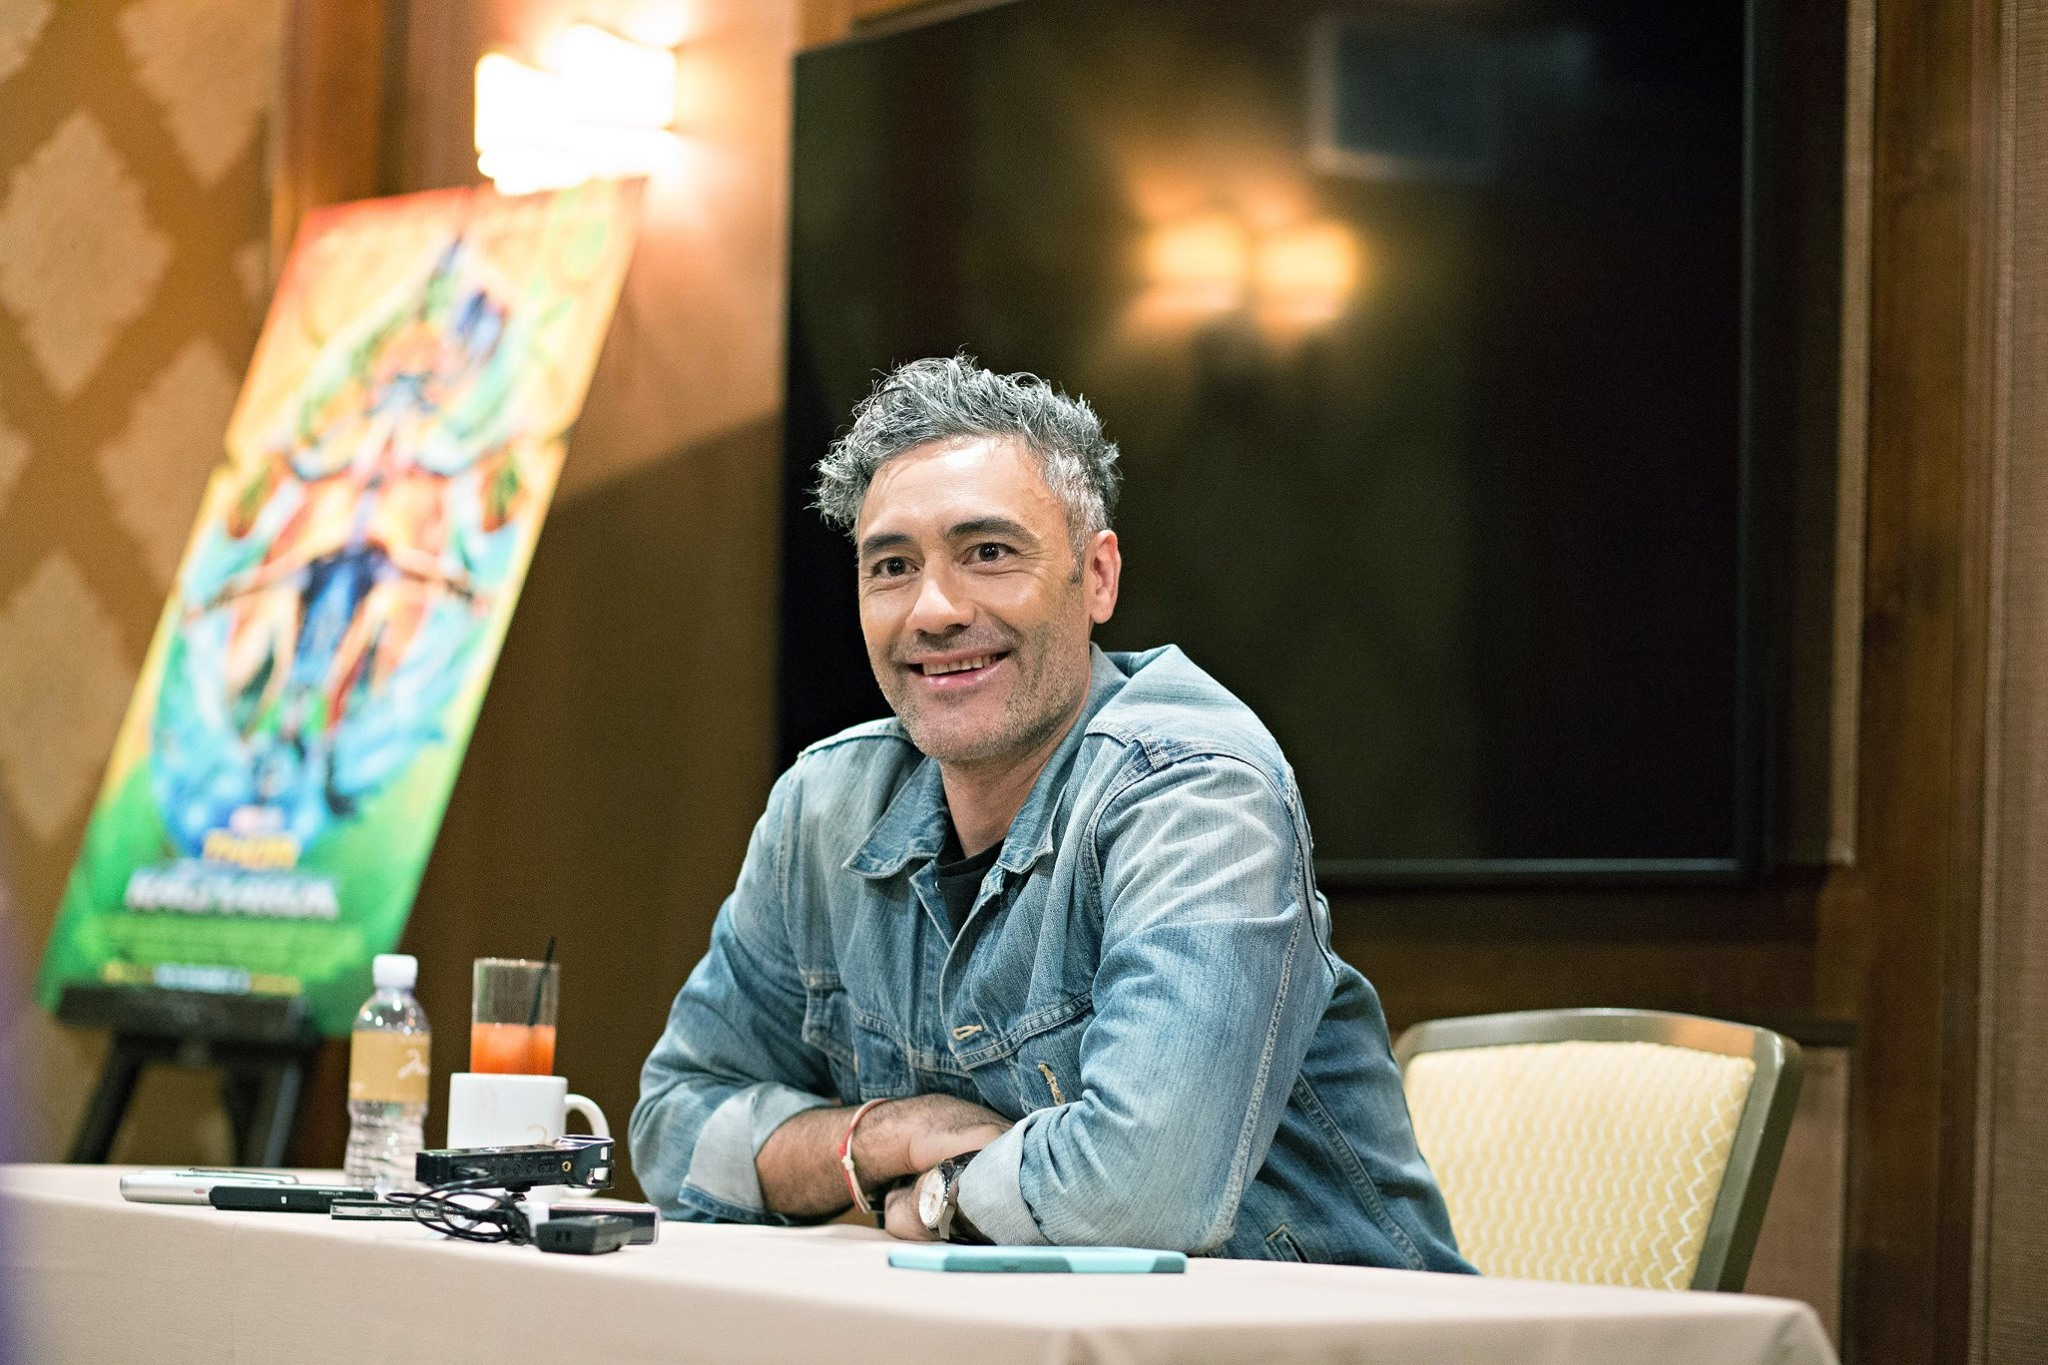 Take Waititi Director of Thor:Ragnarok